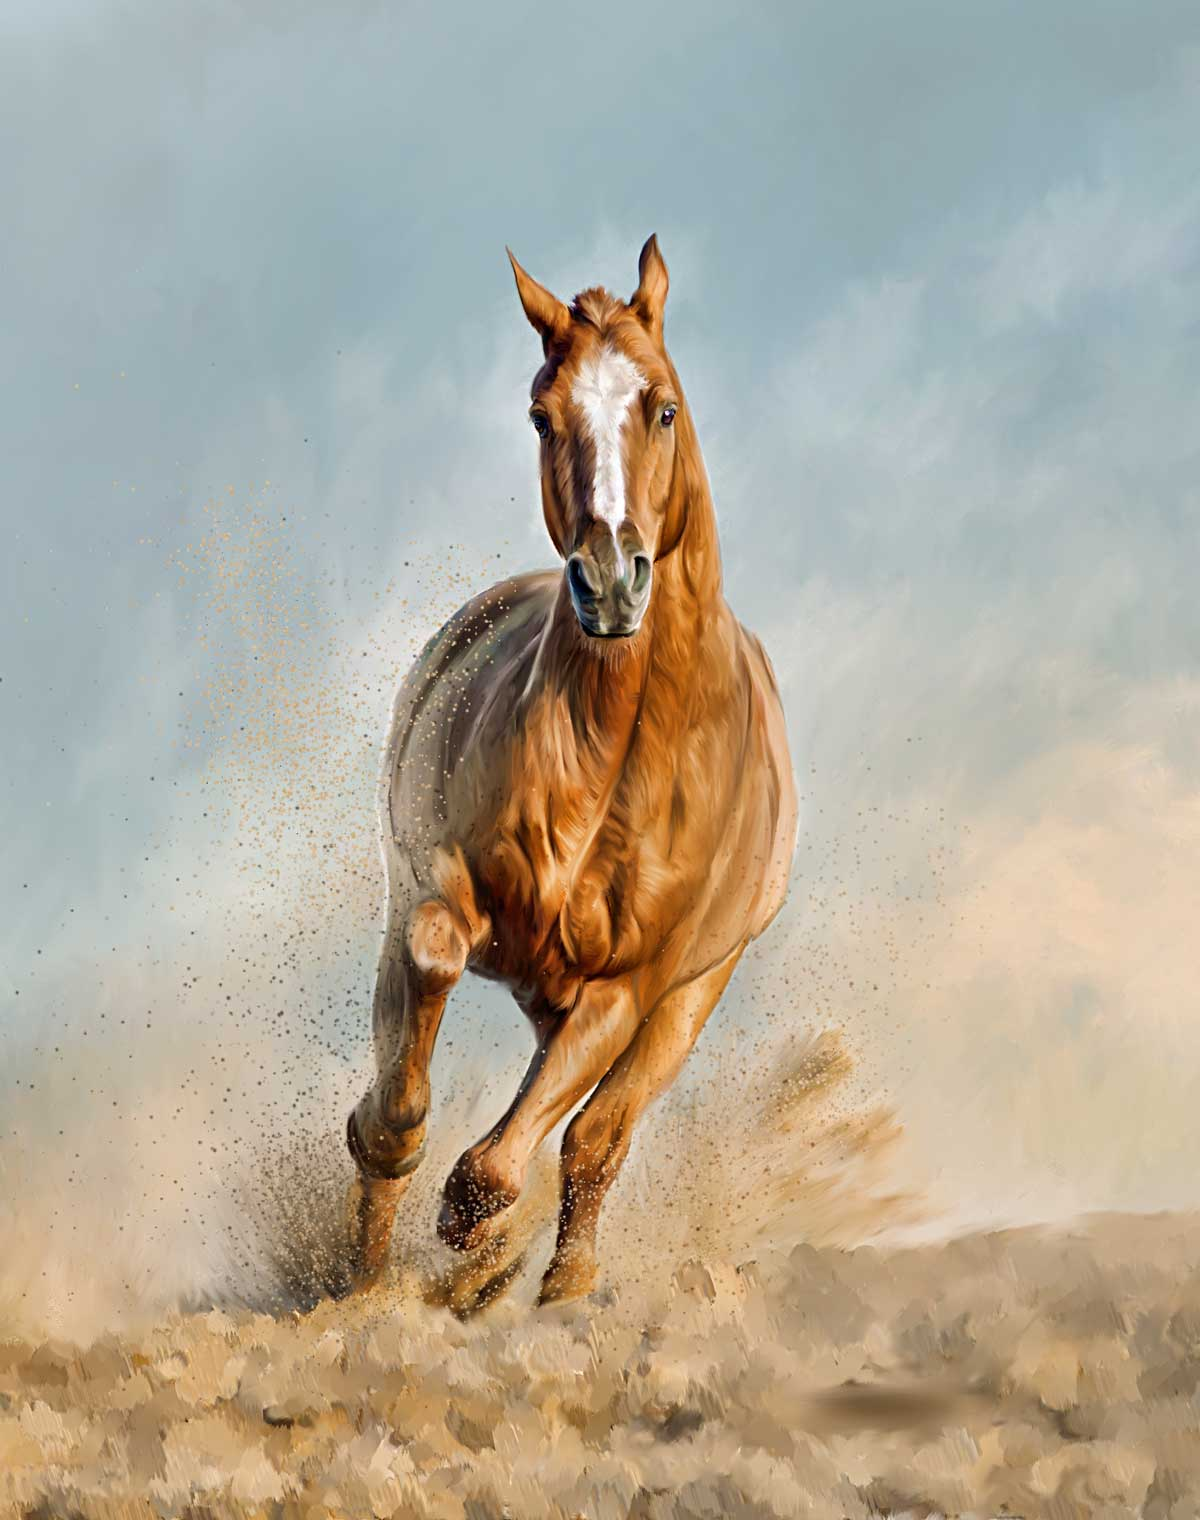 painting chestnut horse running